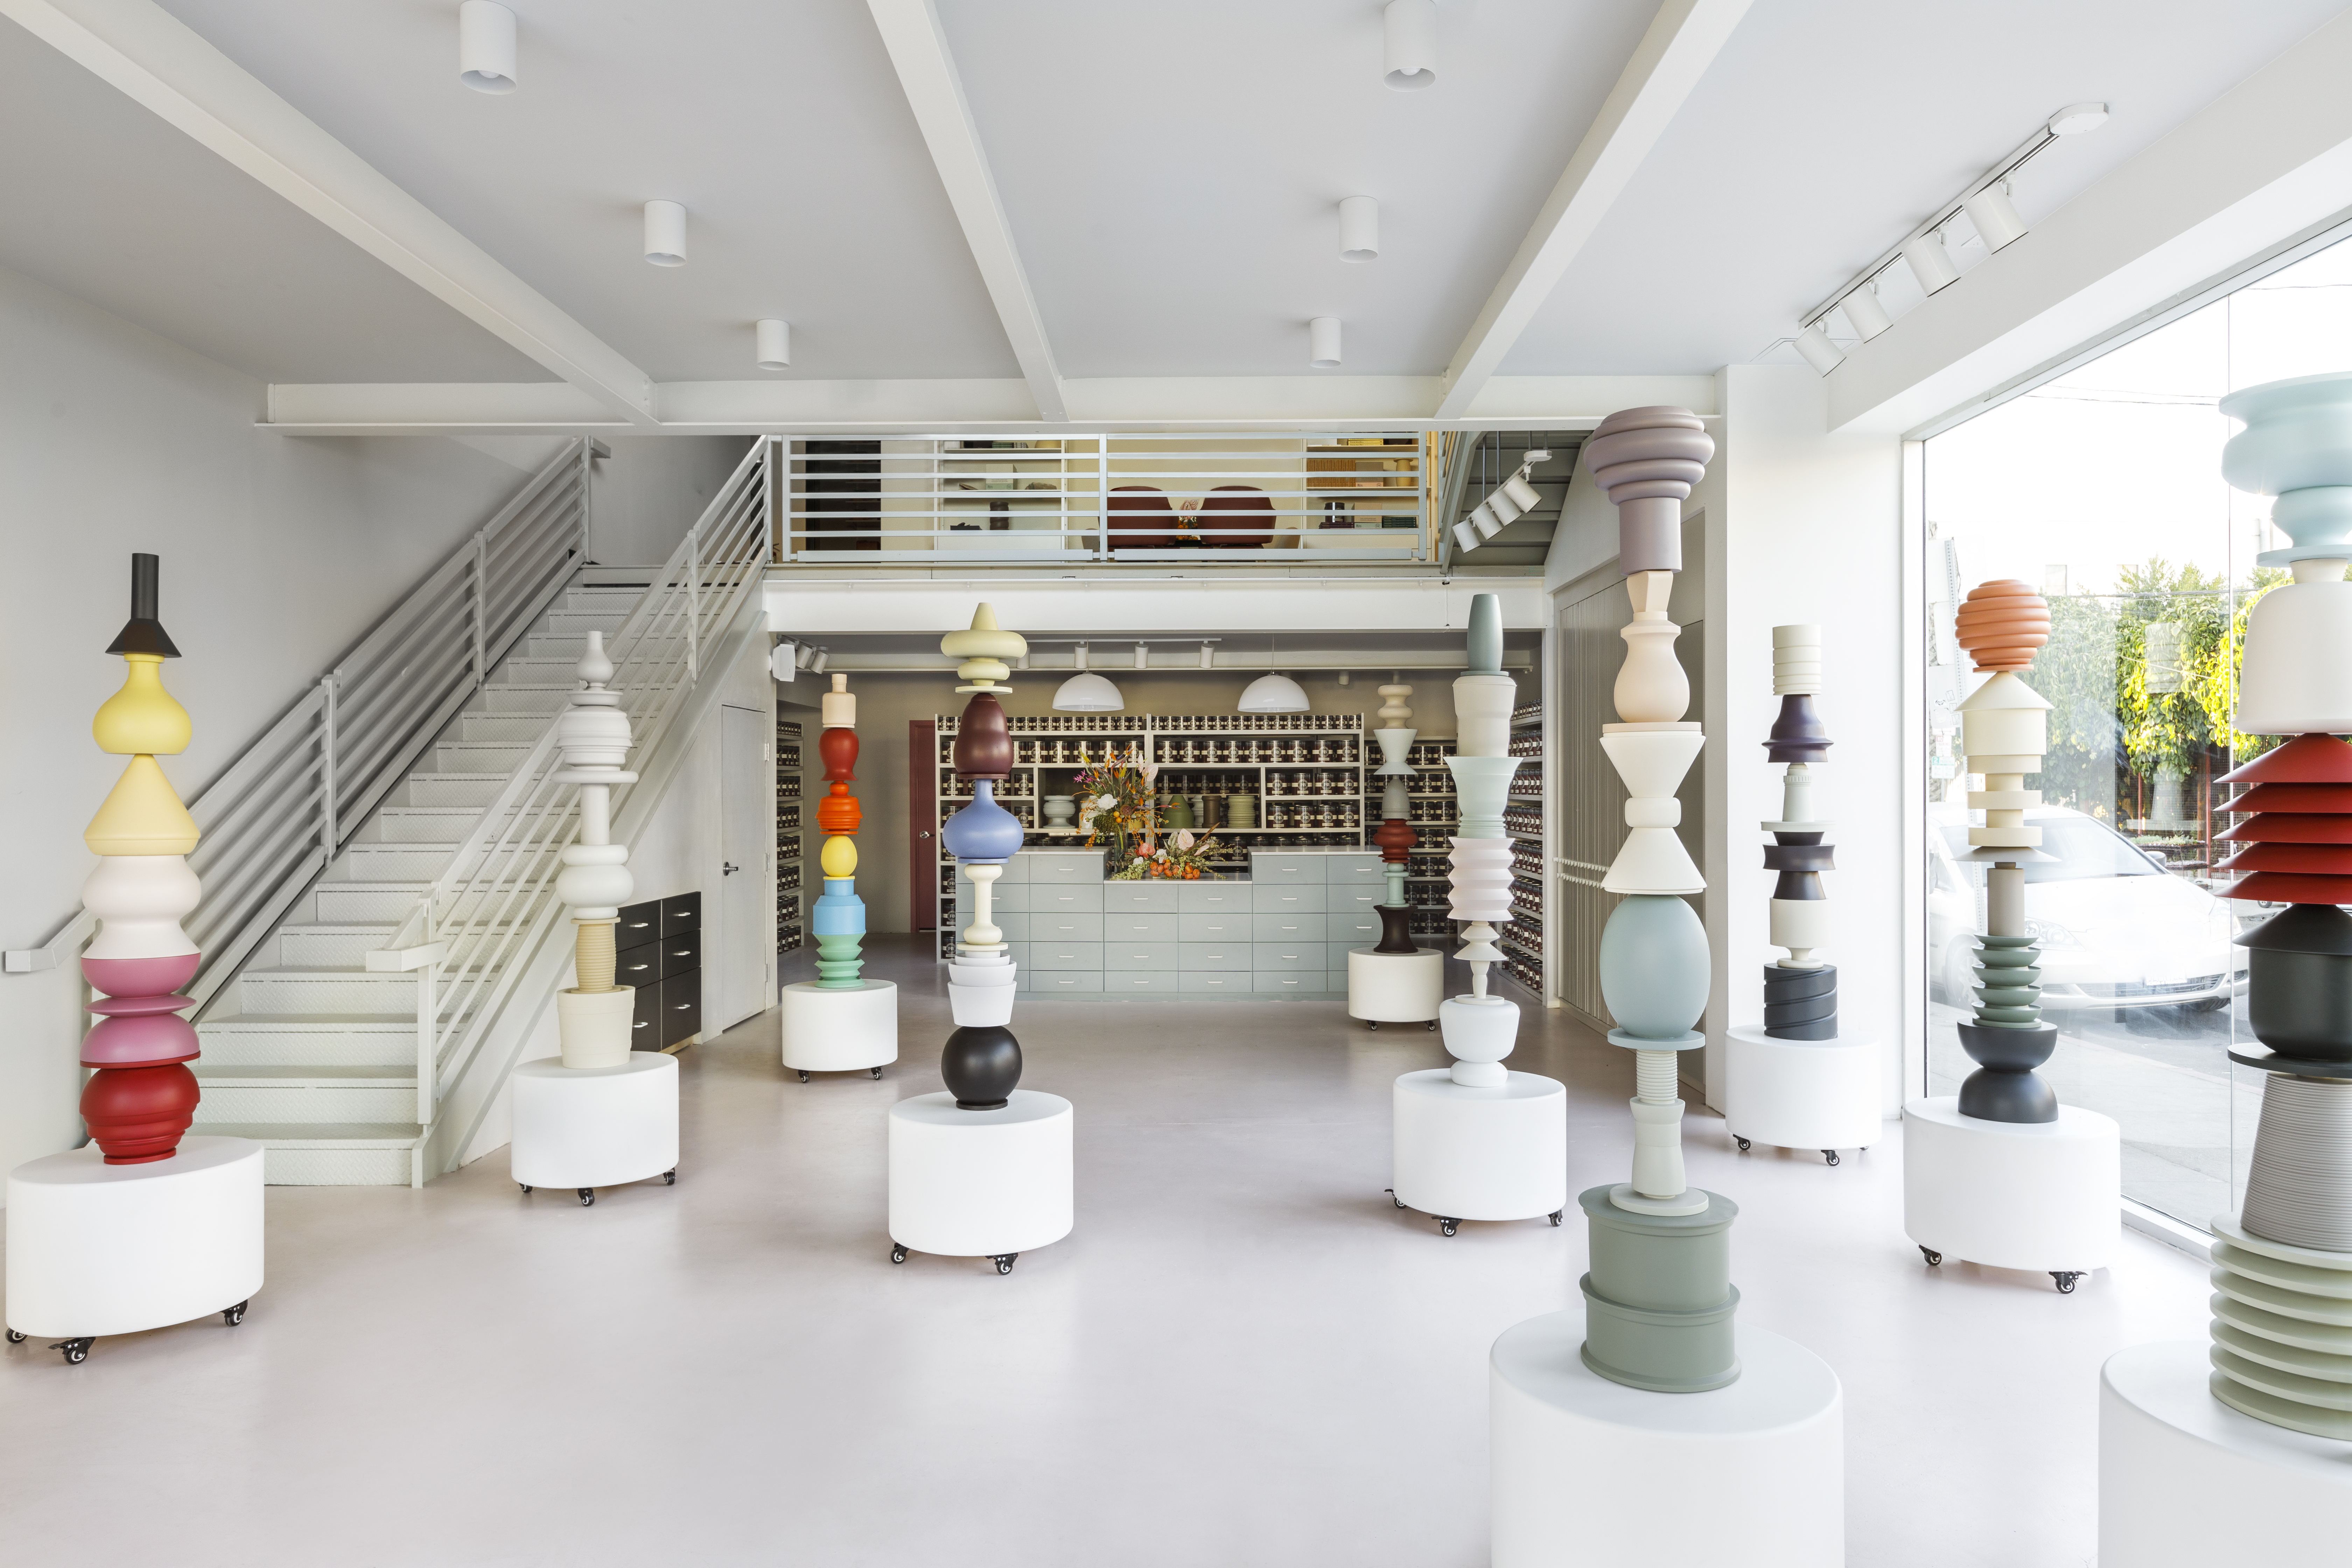 Farrow & Ball's new showroom in LA, the company's second in the city, wants to change how people think of paint stores.